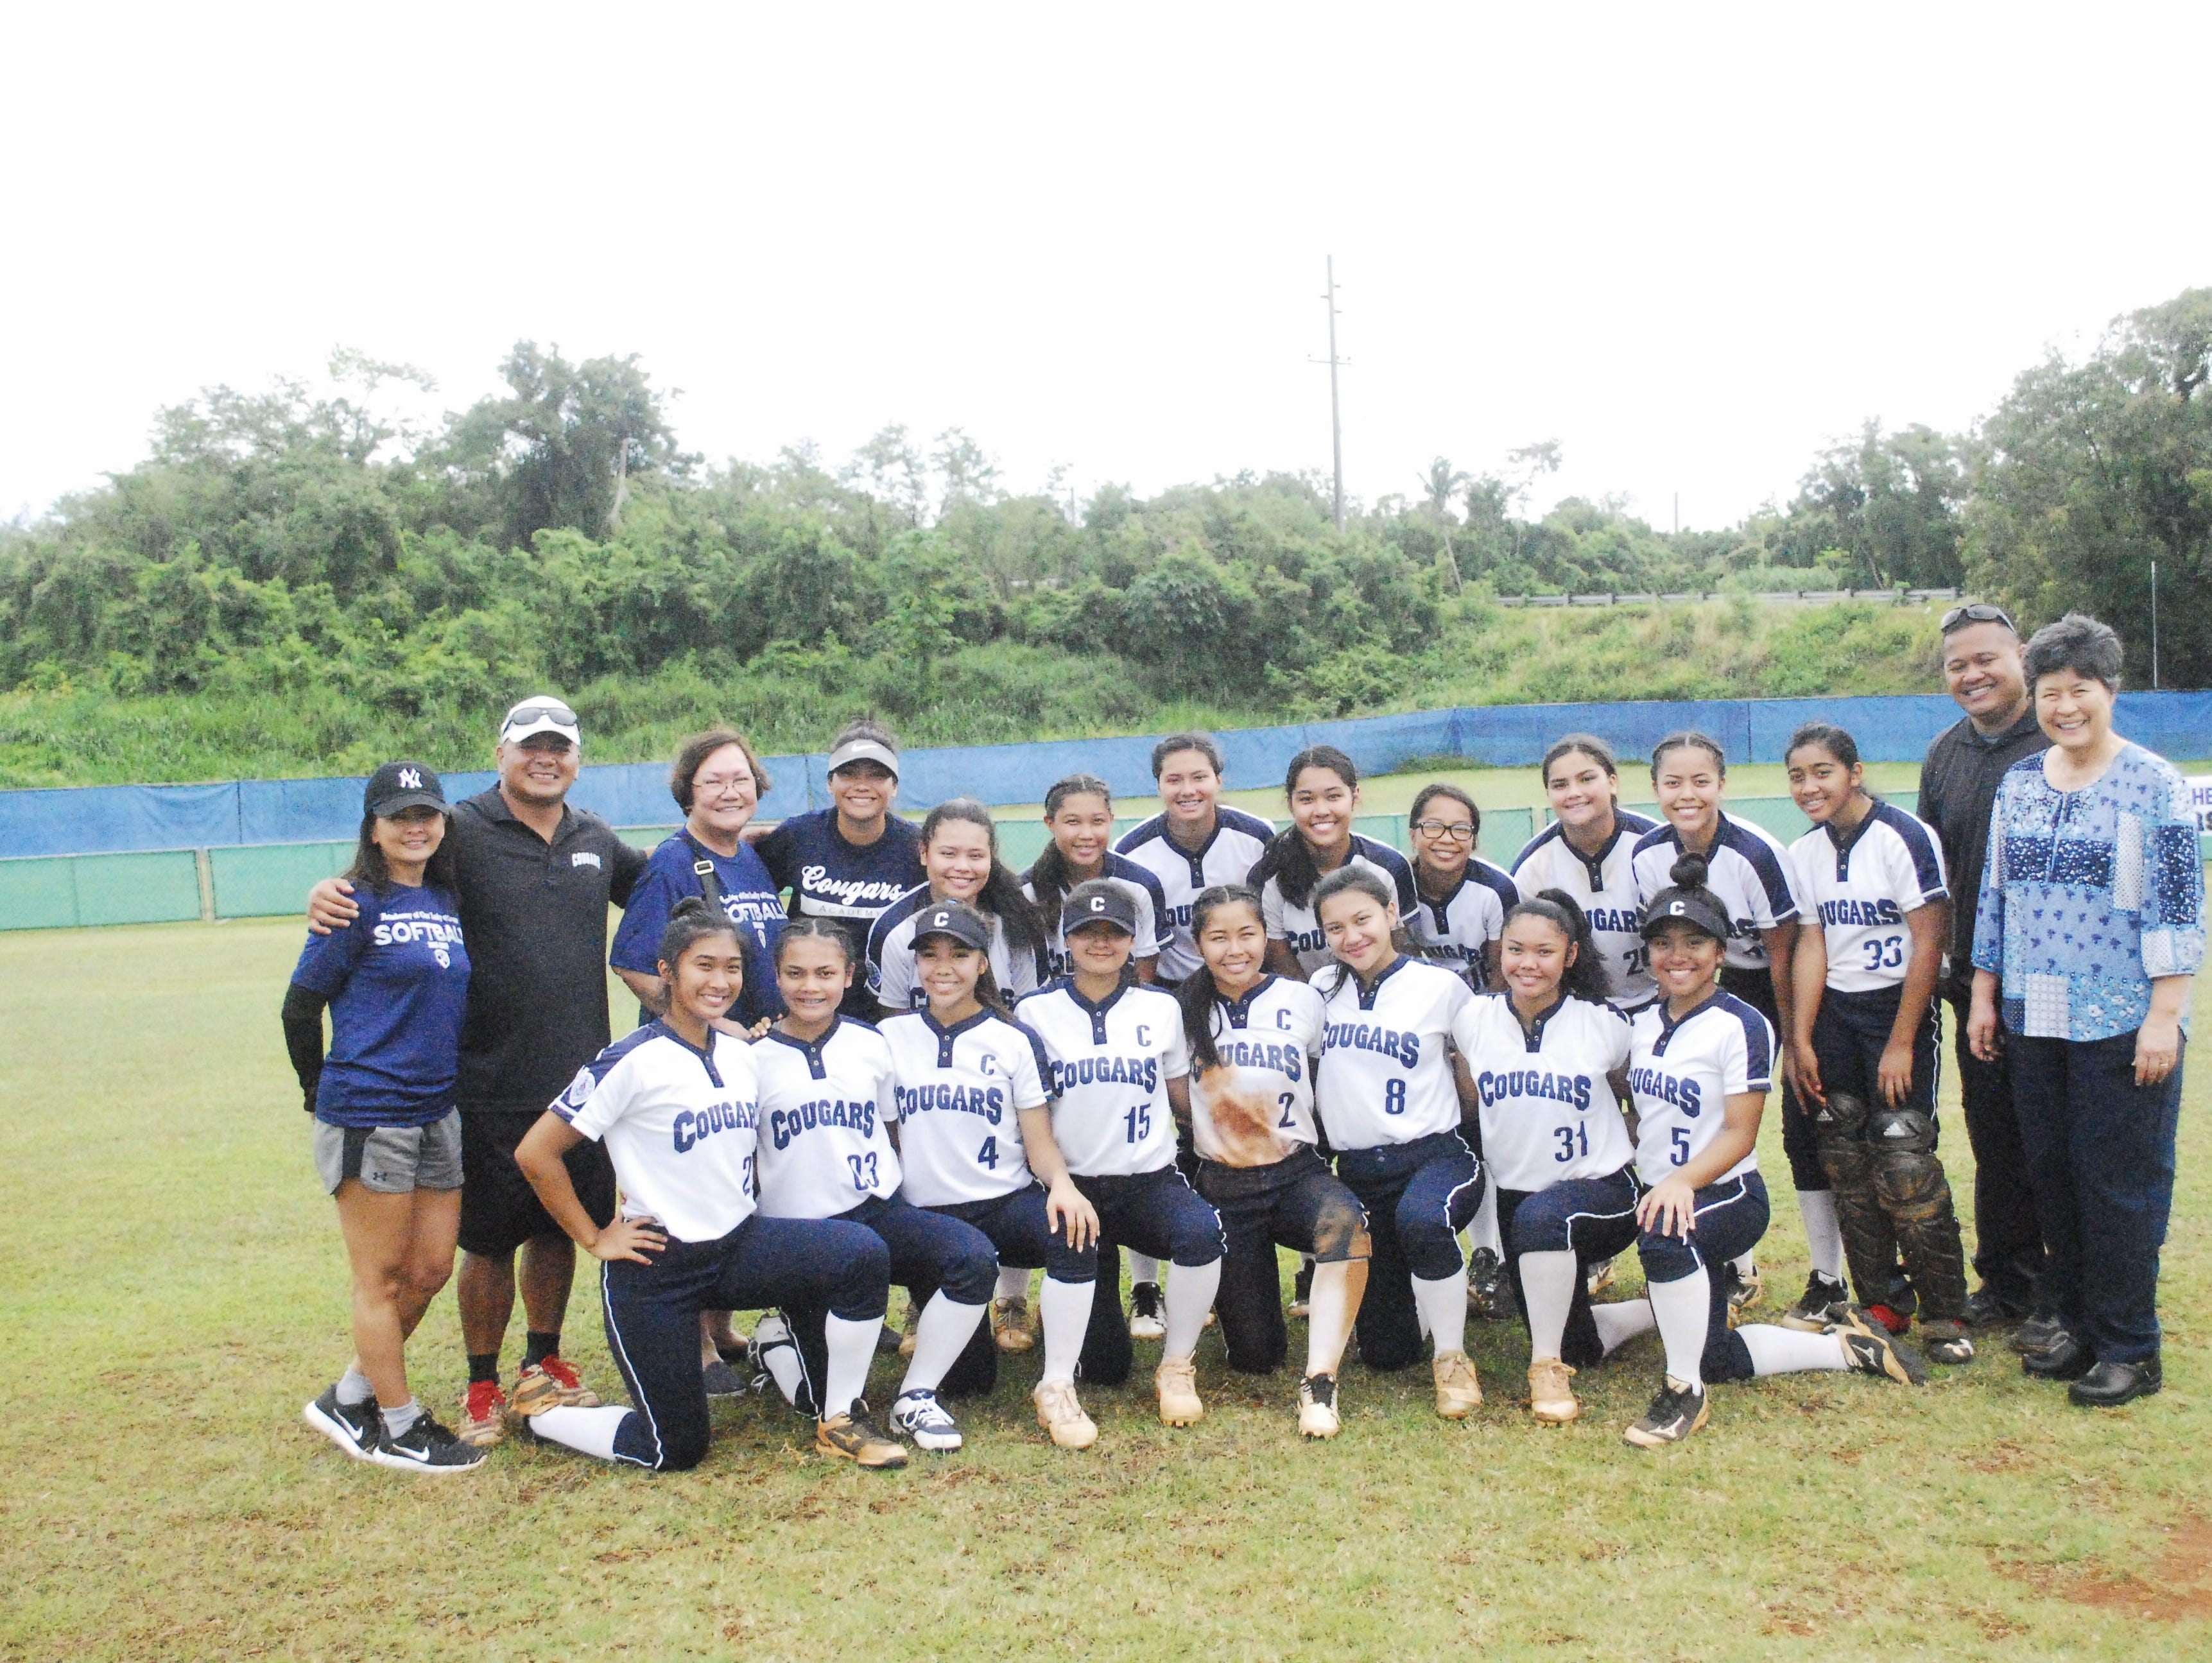 The 3-0 Academy of Our Lady of Guam Cougars softball team, following their  IIAAG High School Girls Softball game against the Simon Sanchez Sharks on Saturday, Feb. 2 at Tai Field in Mangilao.